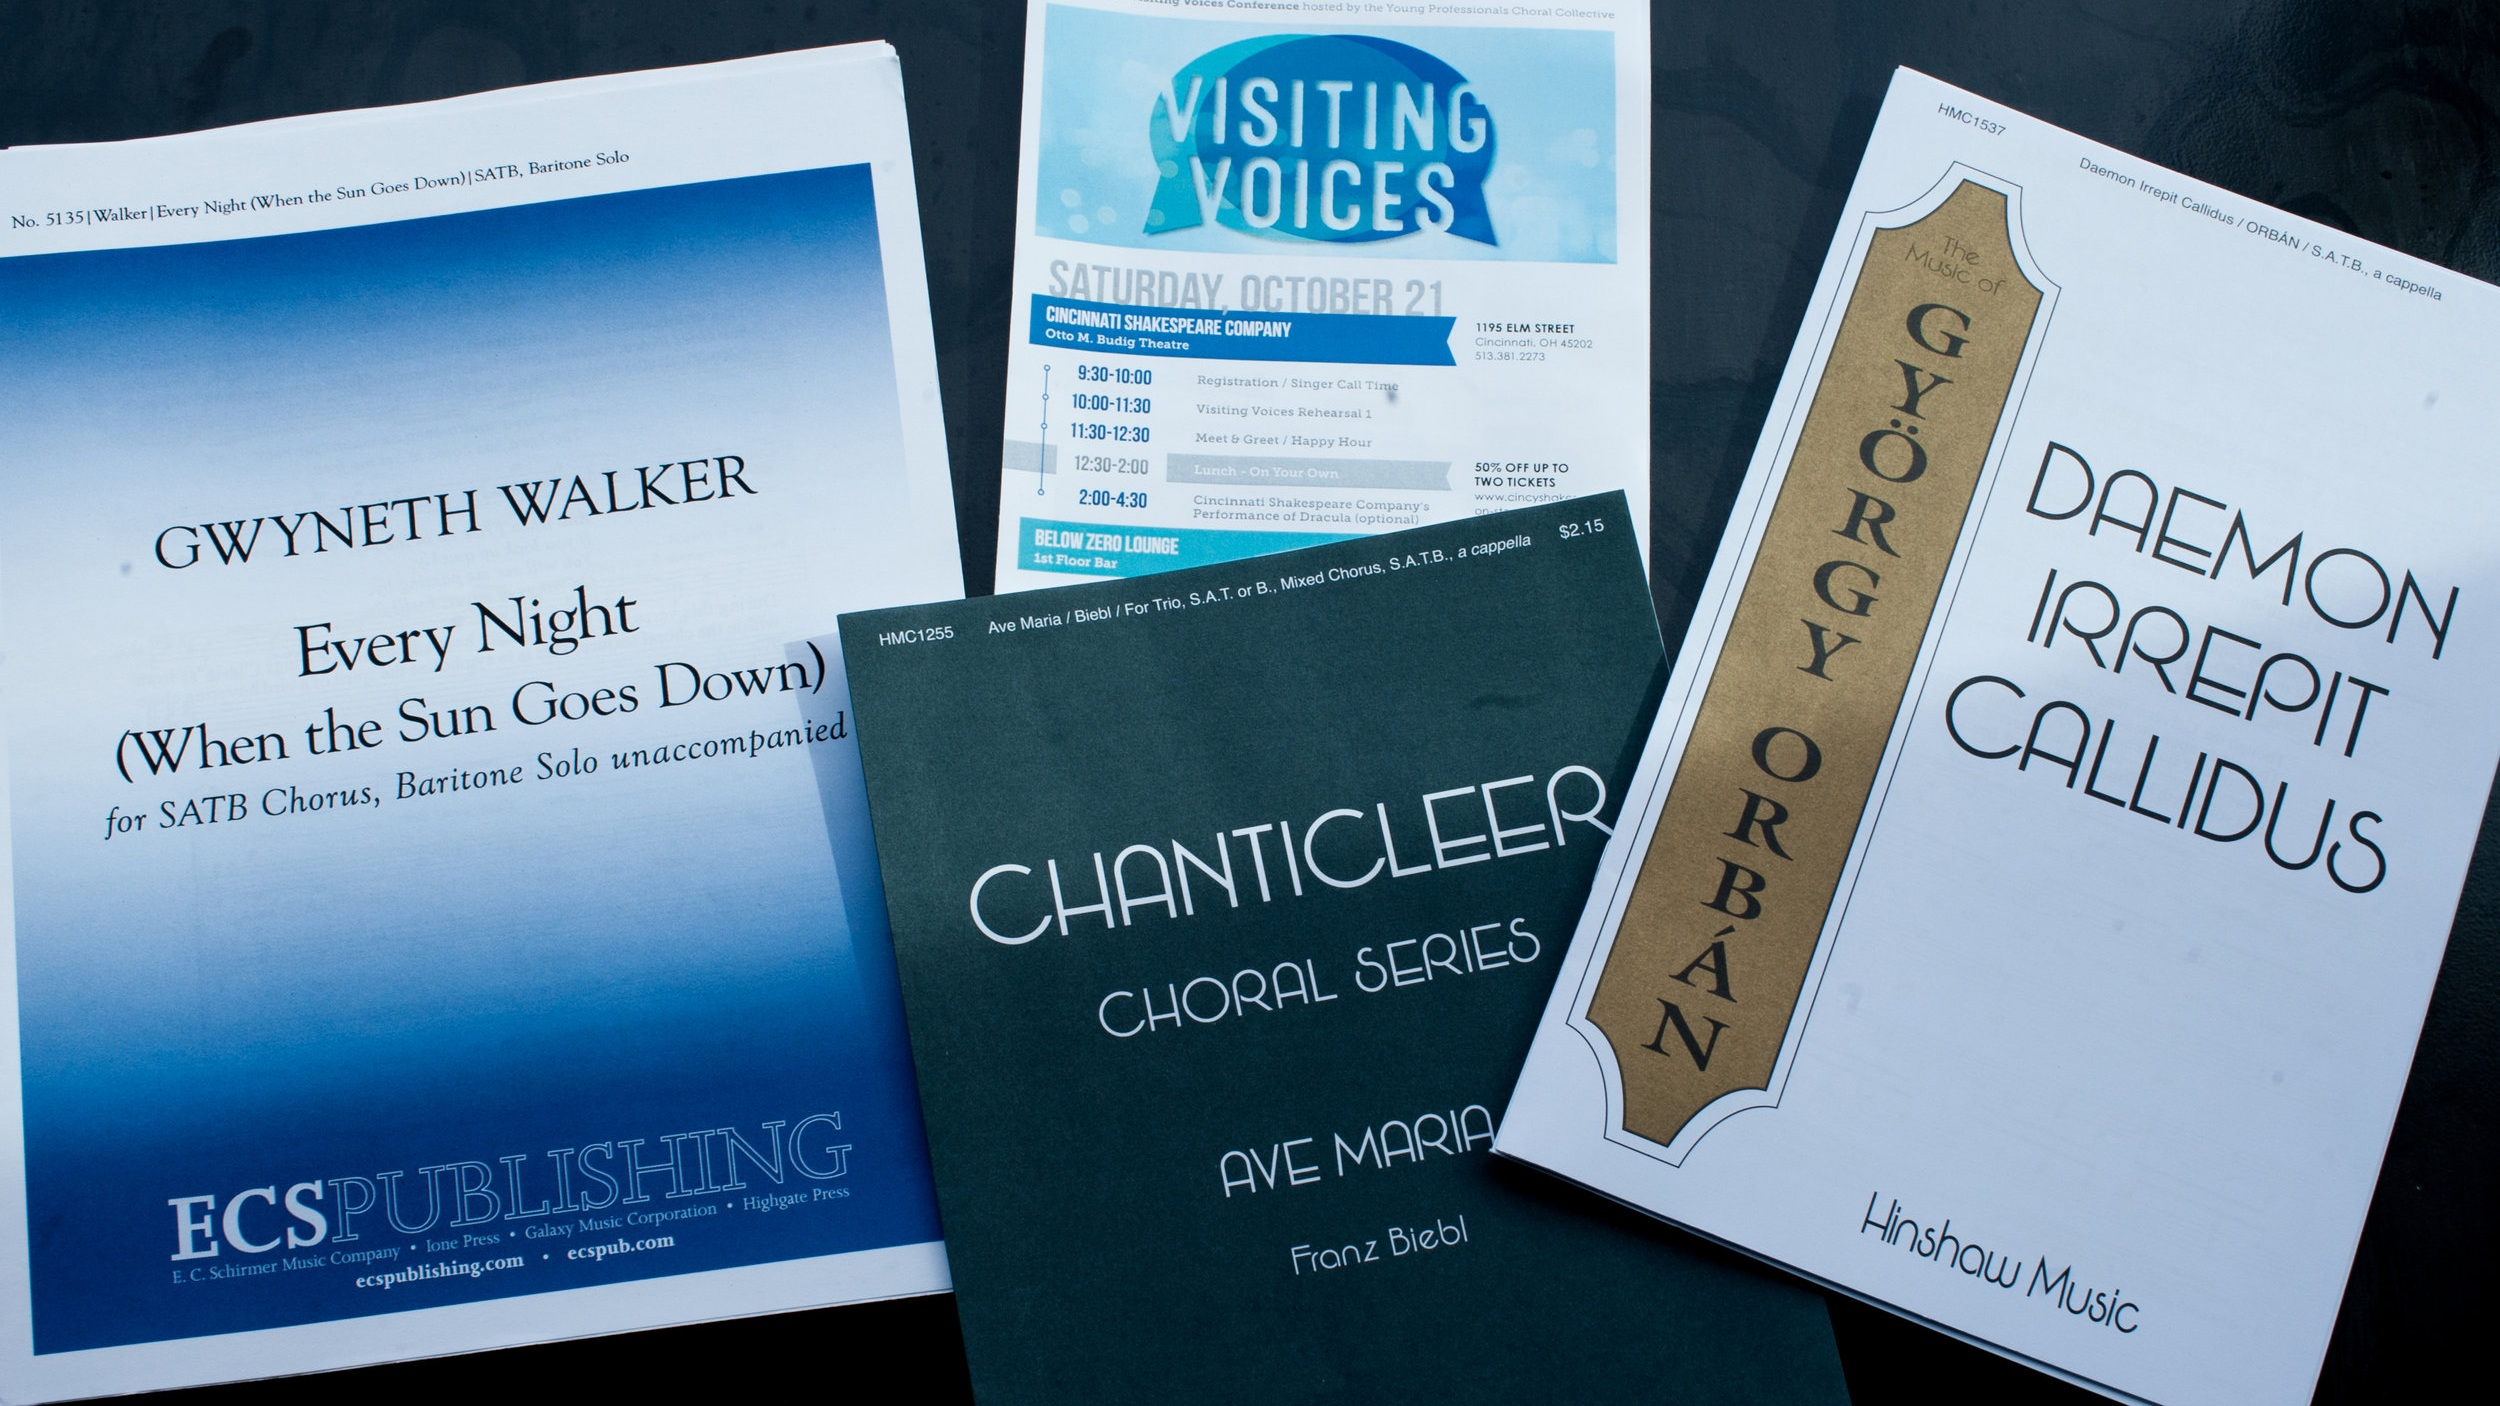 Partial Program of Music from Visiting Voices, October 2017